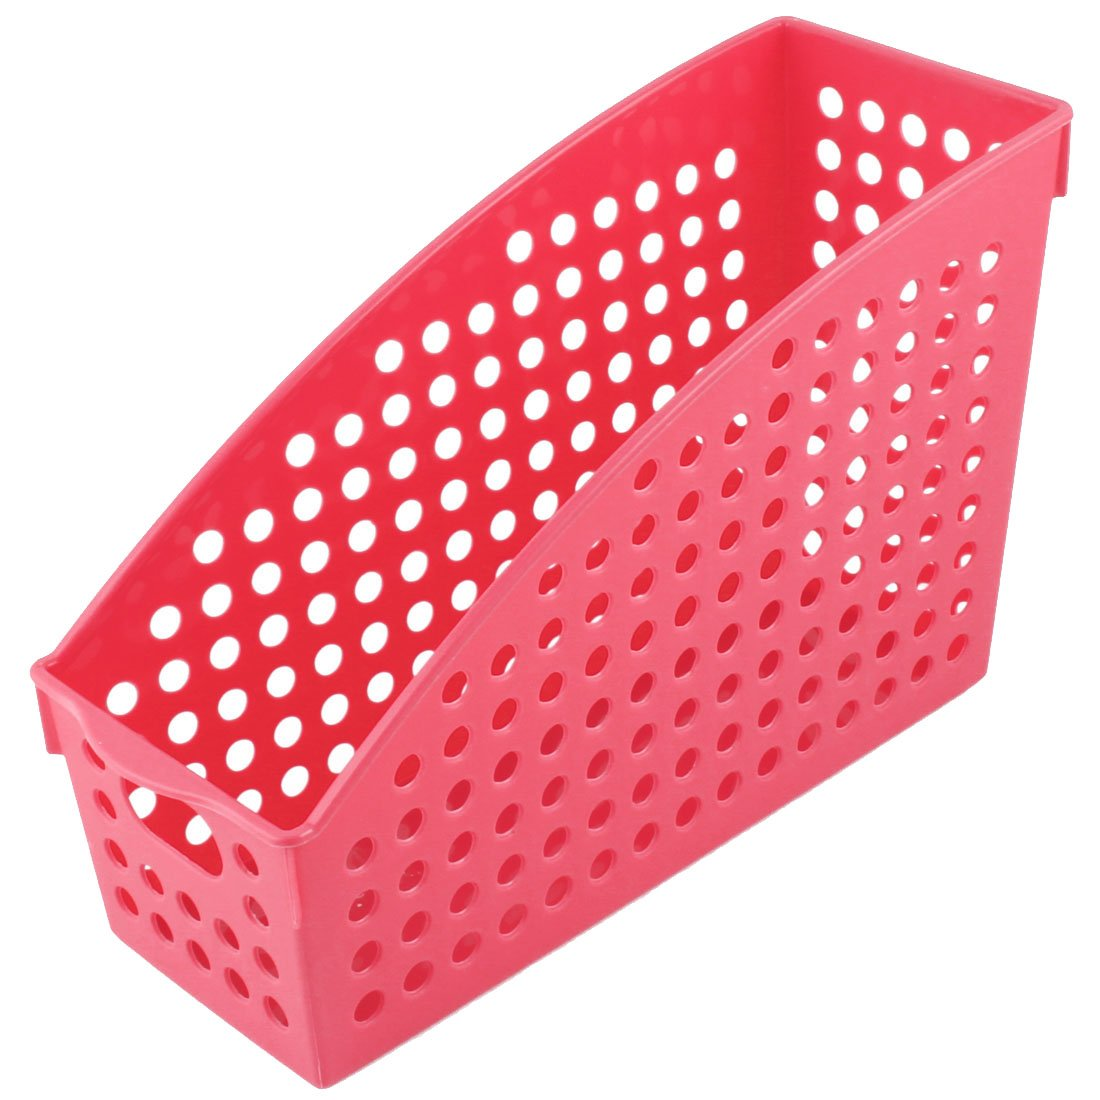 uxcell Plastic Home Office School Paper Book Document File Holder Storage Basket Red